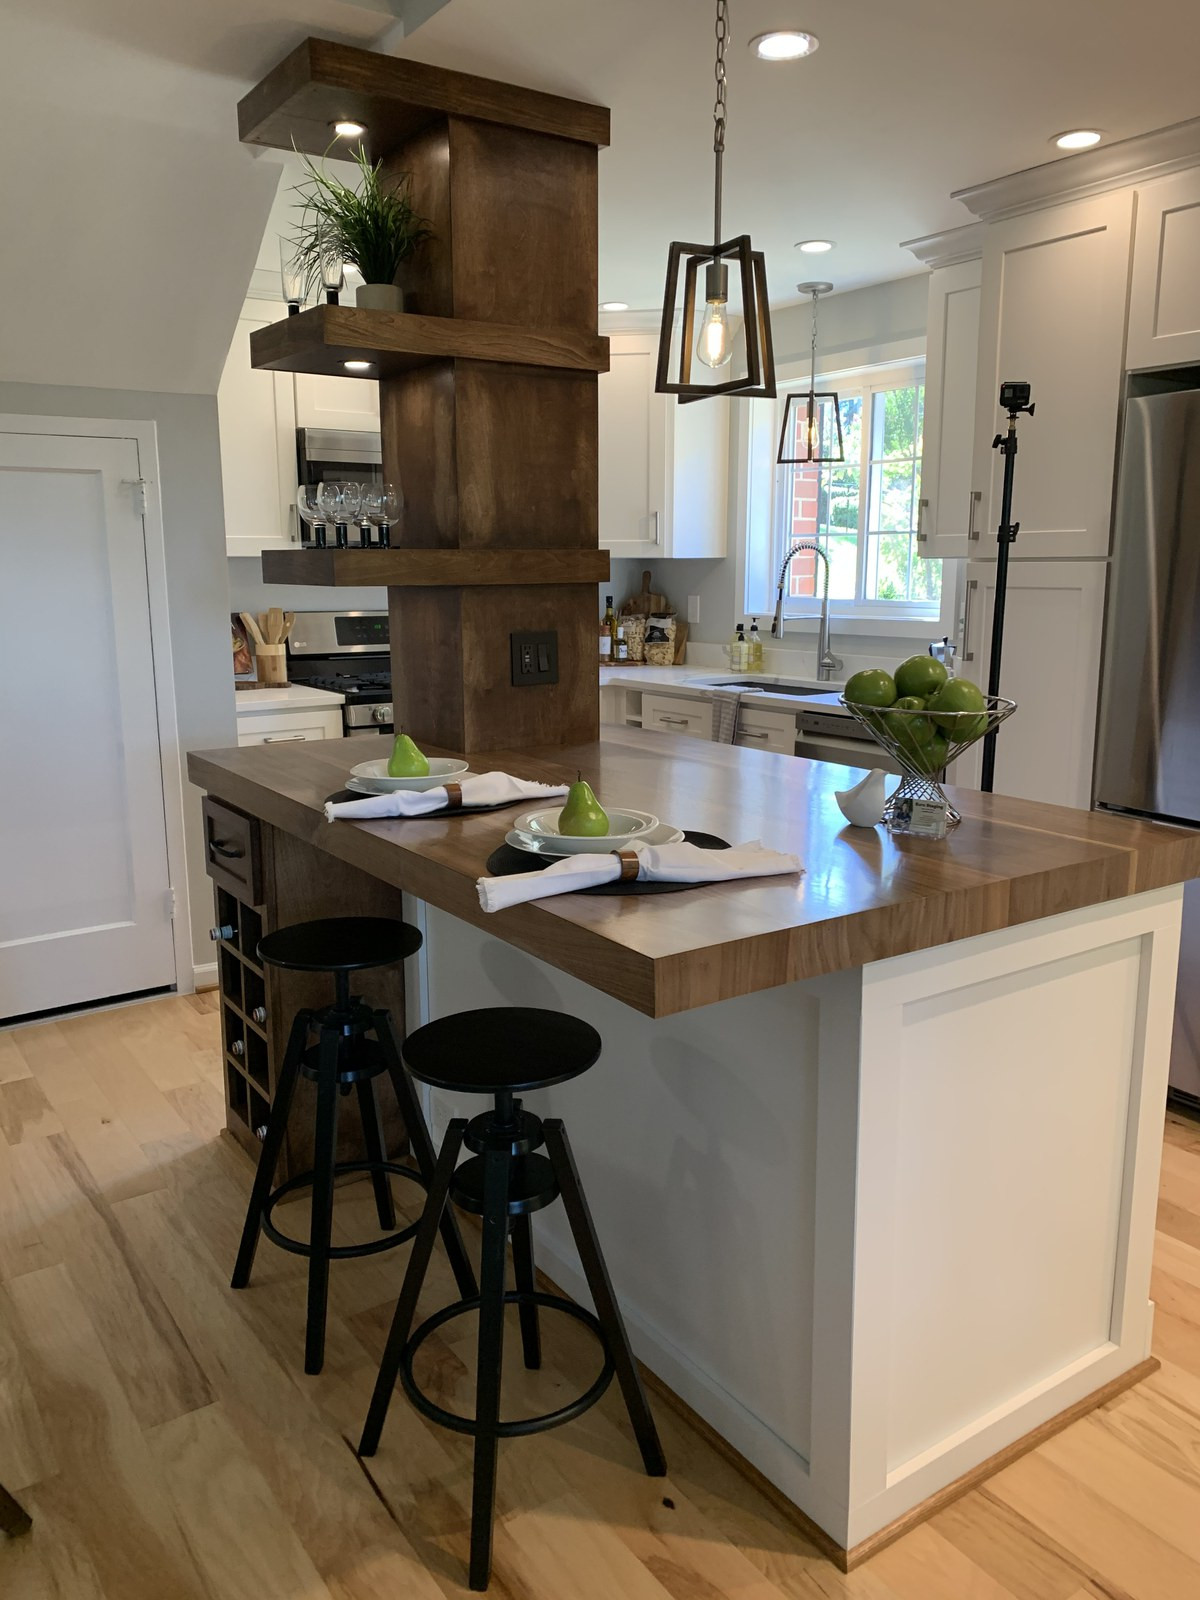 After Kitchen Staging